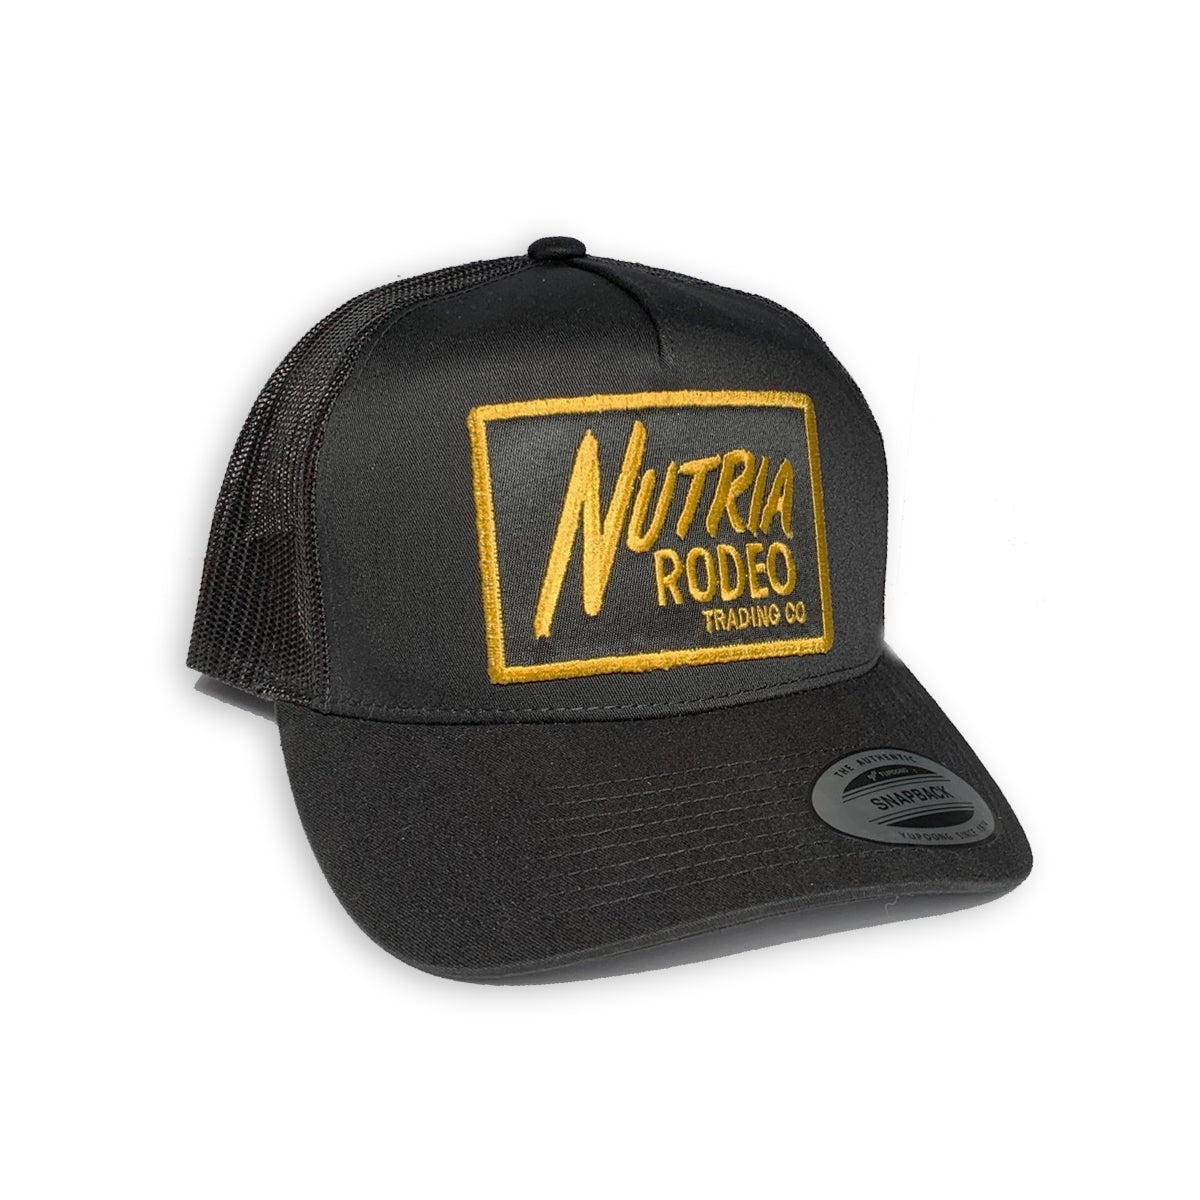 Nutria Rodeo Trucker Hat - The Nutria Rodeo Trading Co.